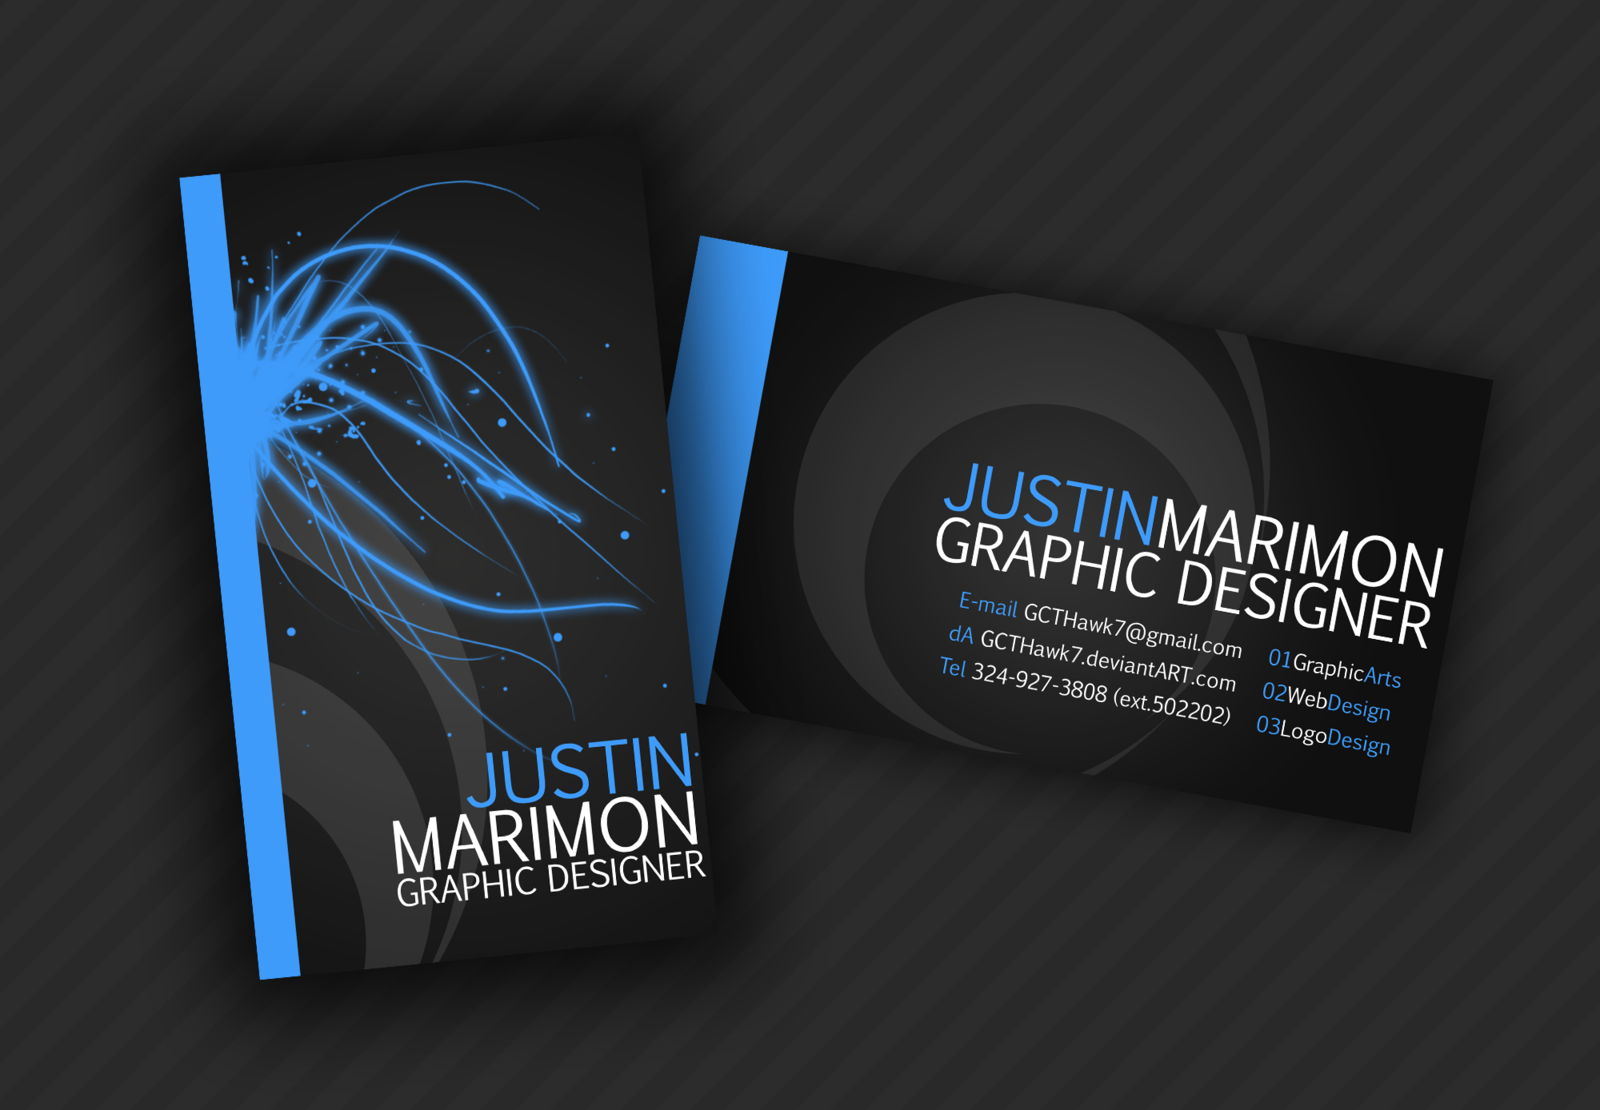 Business Card Design Ideas - Business Card Tips